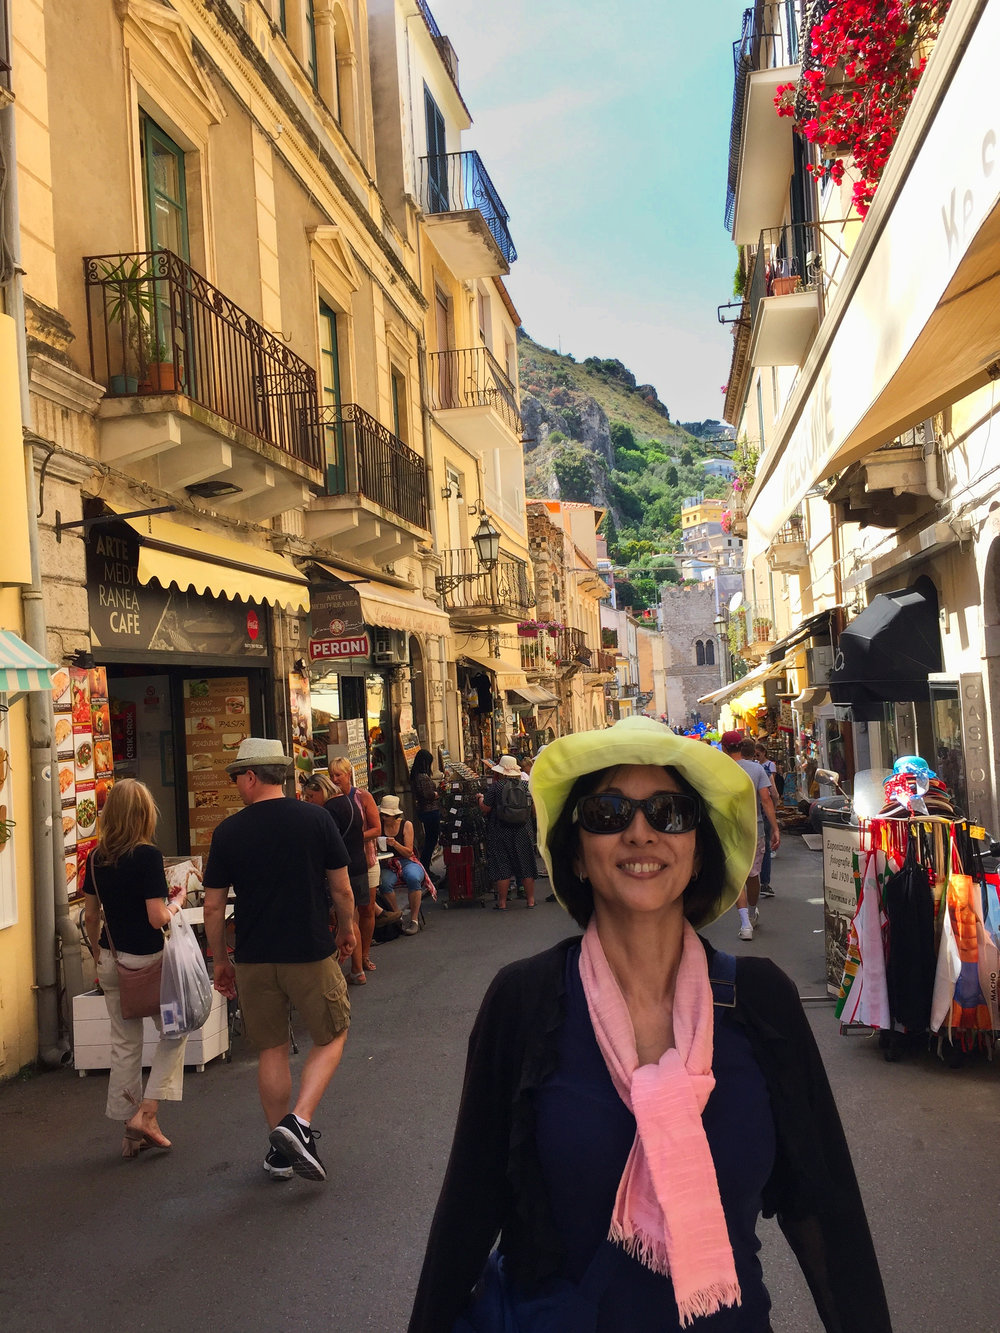 Walking through the shopping area of Taormina to catch the bus and then train back to the port of Messina.